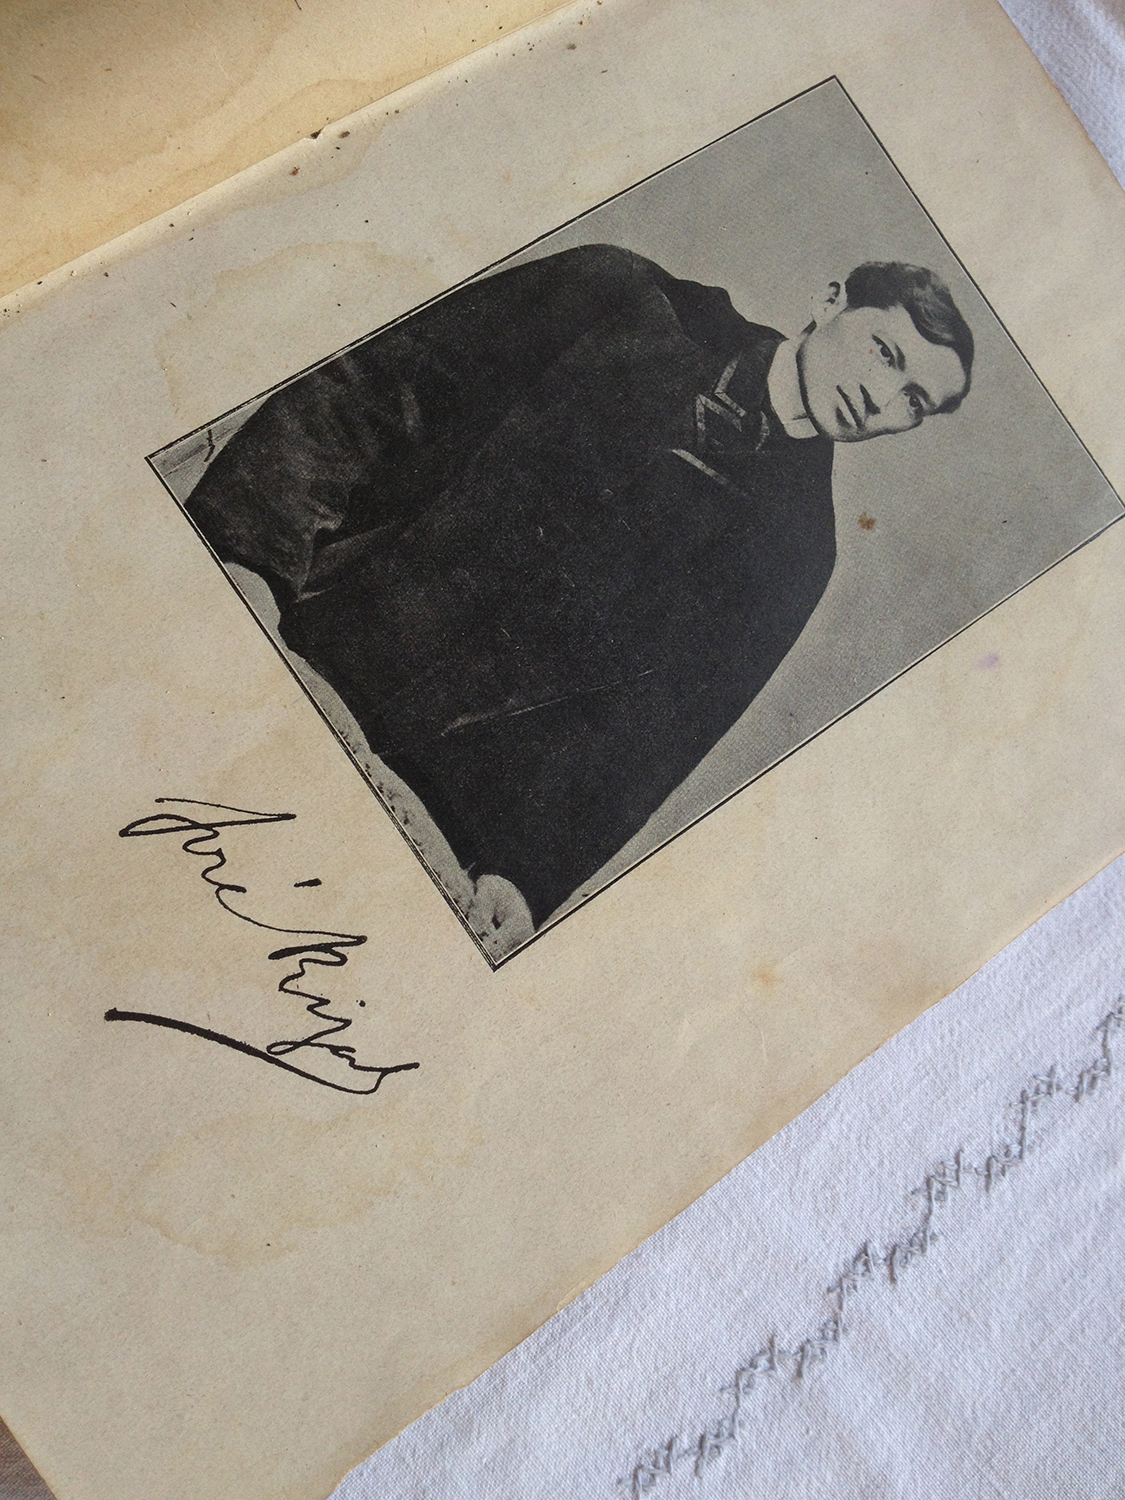 Jose Rizal signed the copy of the Noli Me Tangere that he gave to Leonor Rivera. (Photo by Elizabeth Ann Quirino)